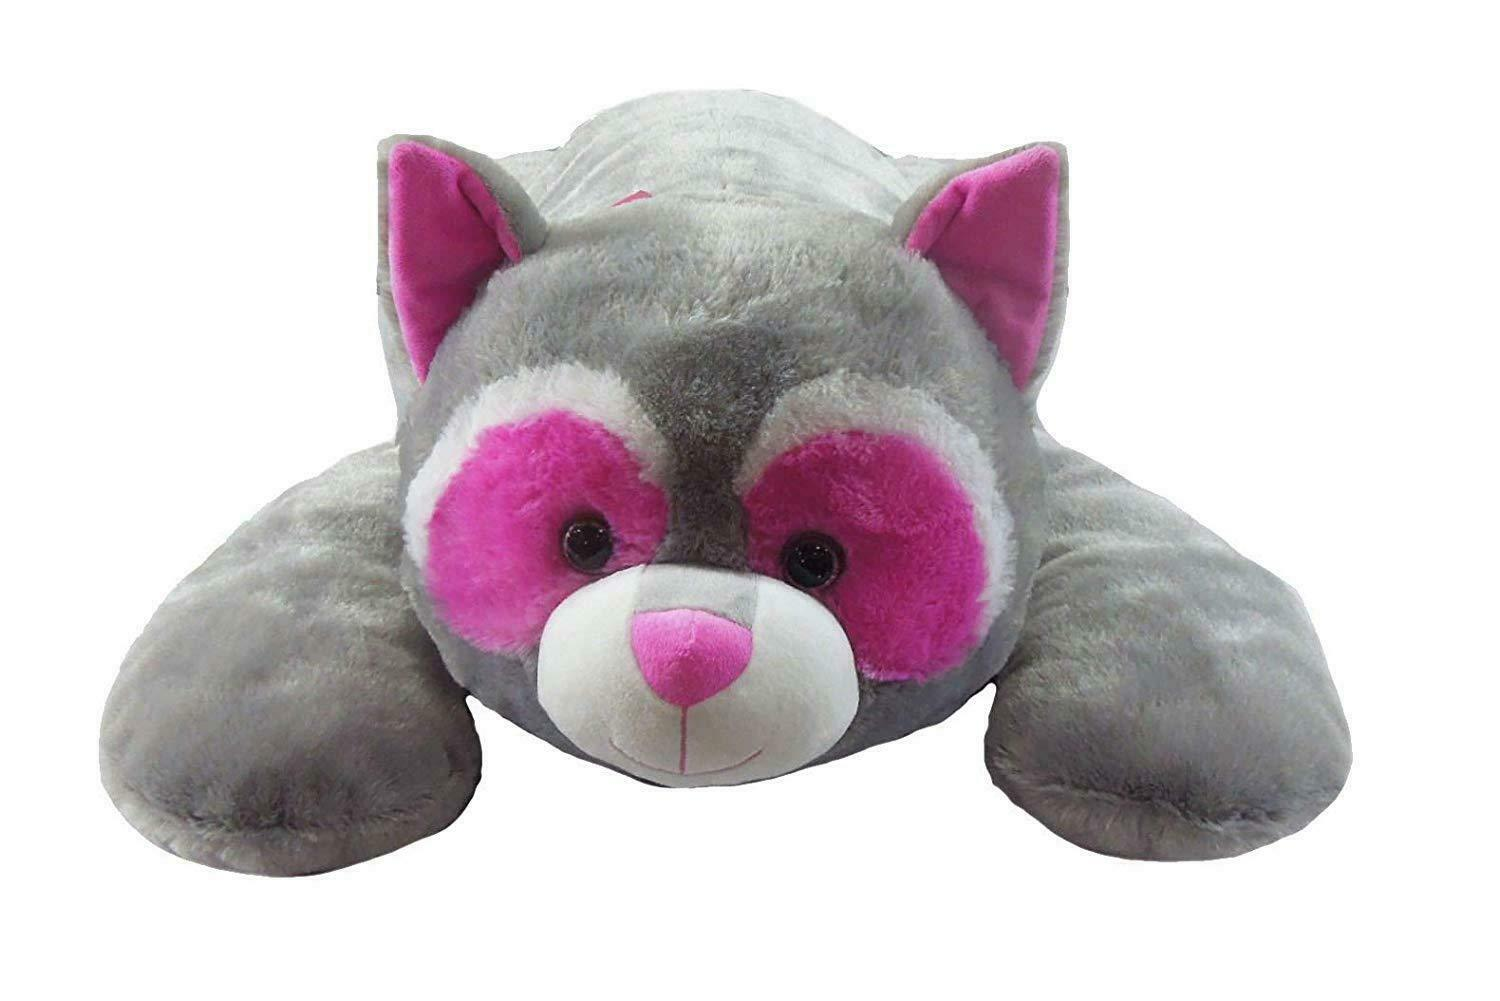 Jumbo Lying Raccoon Plush, Super Soft Stuffed Animal, 39